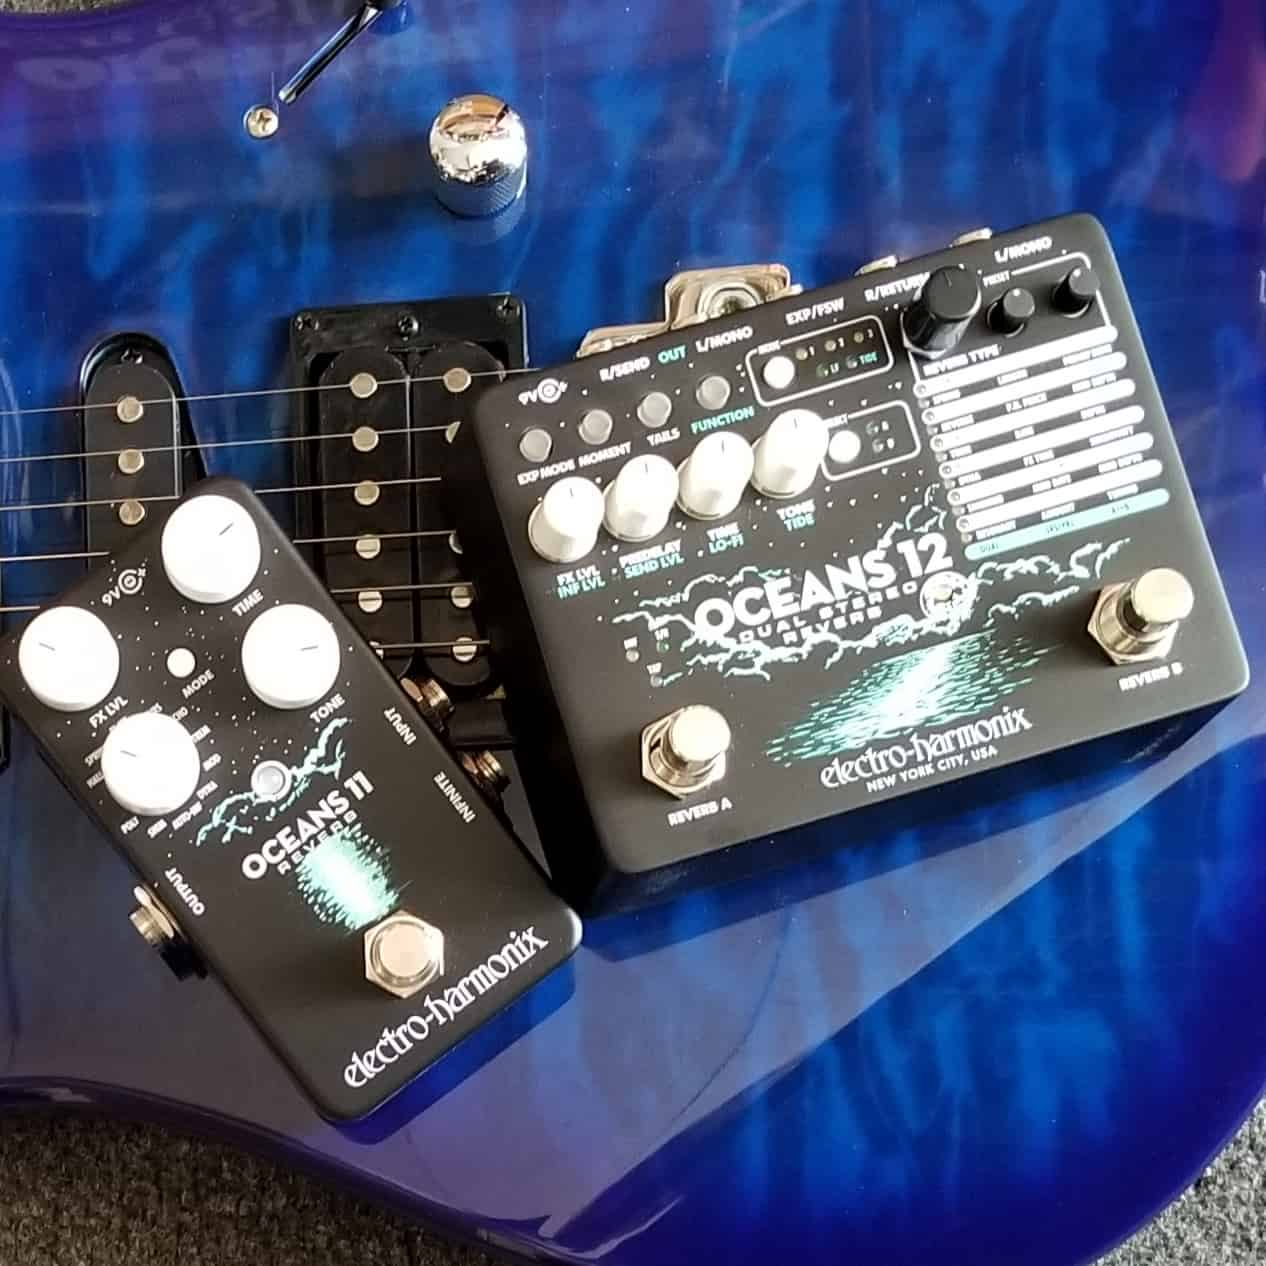 EHX Oceans 11 and Oceans 12 reverb effects pedals